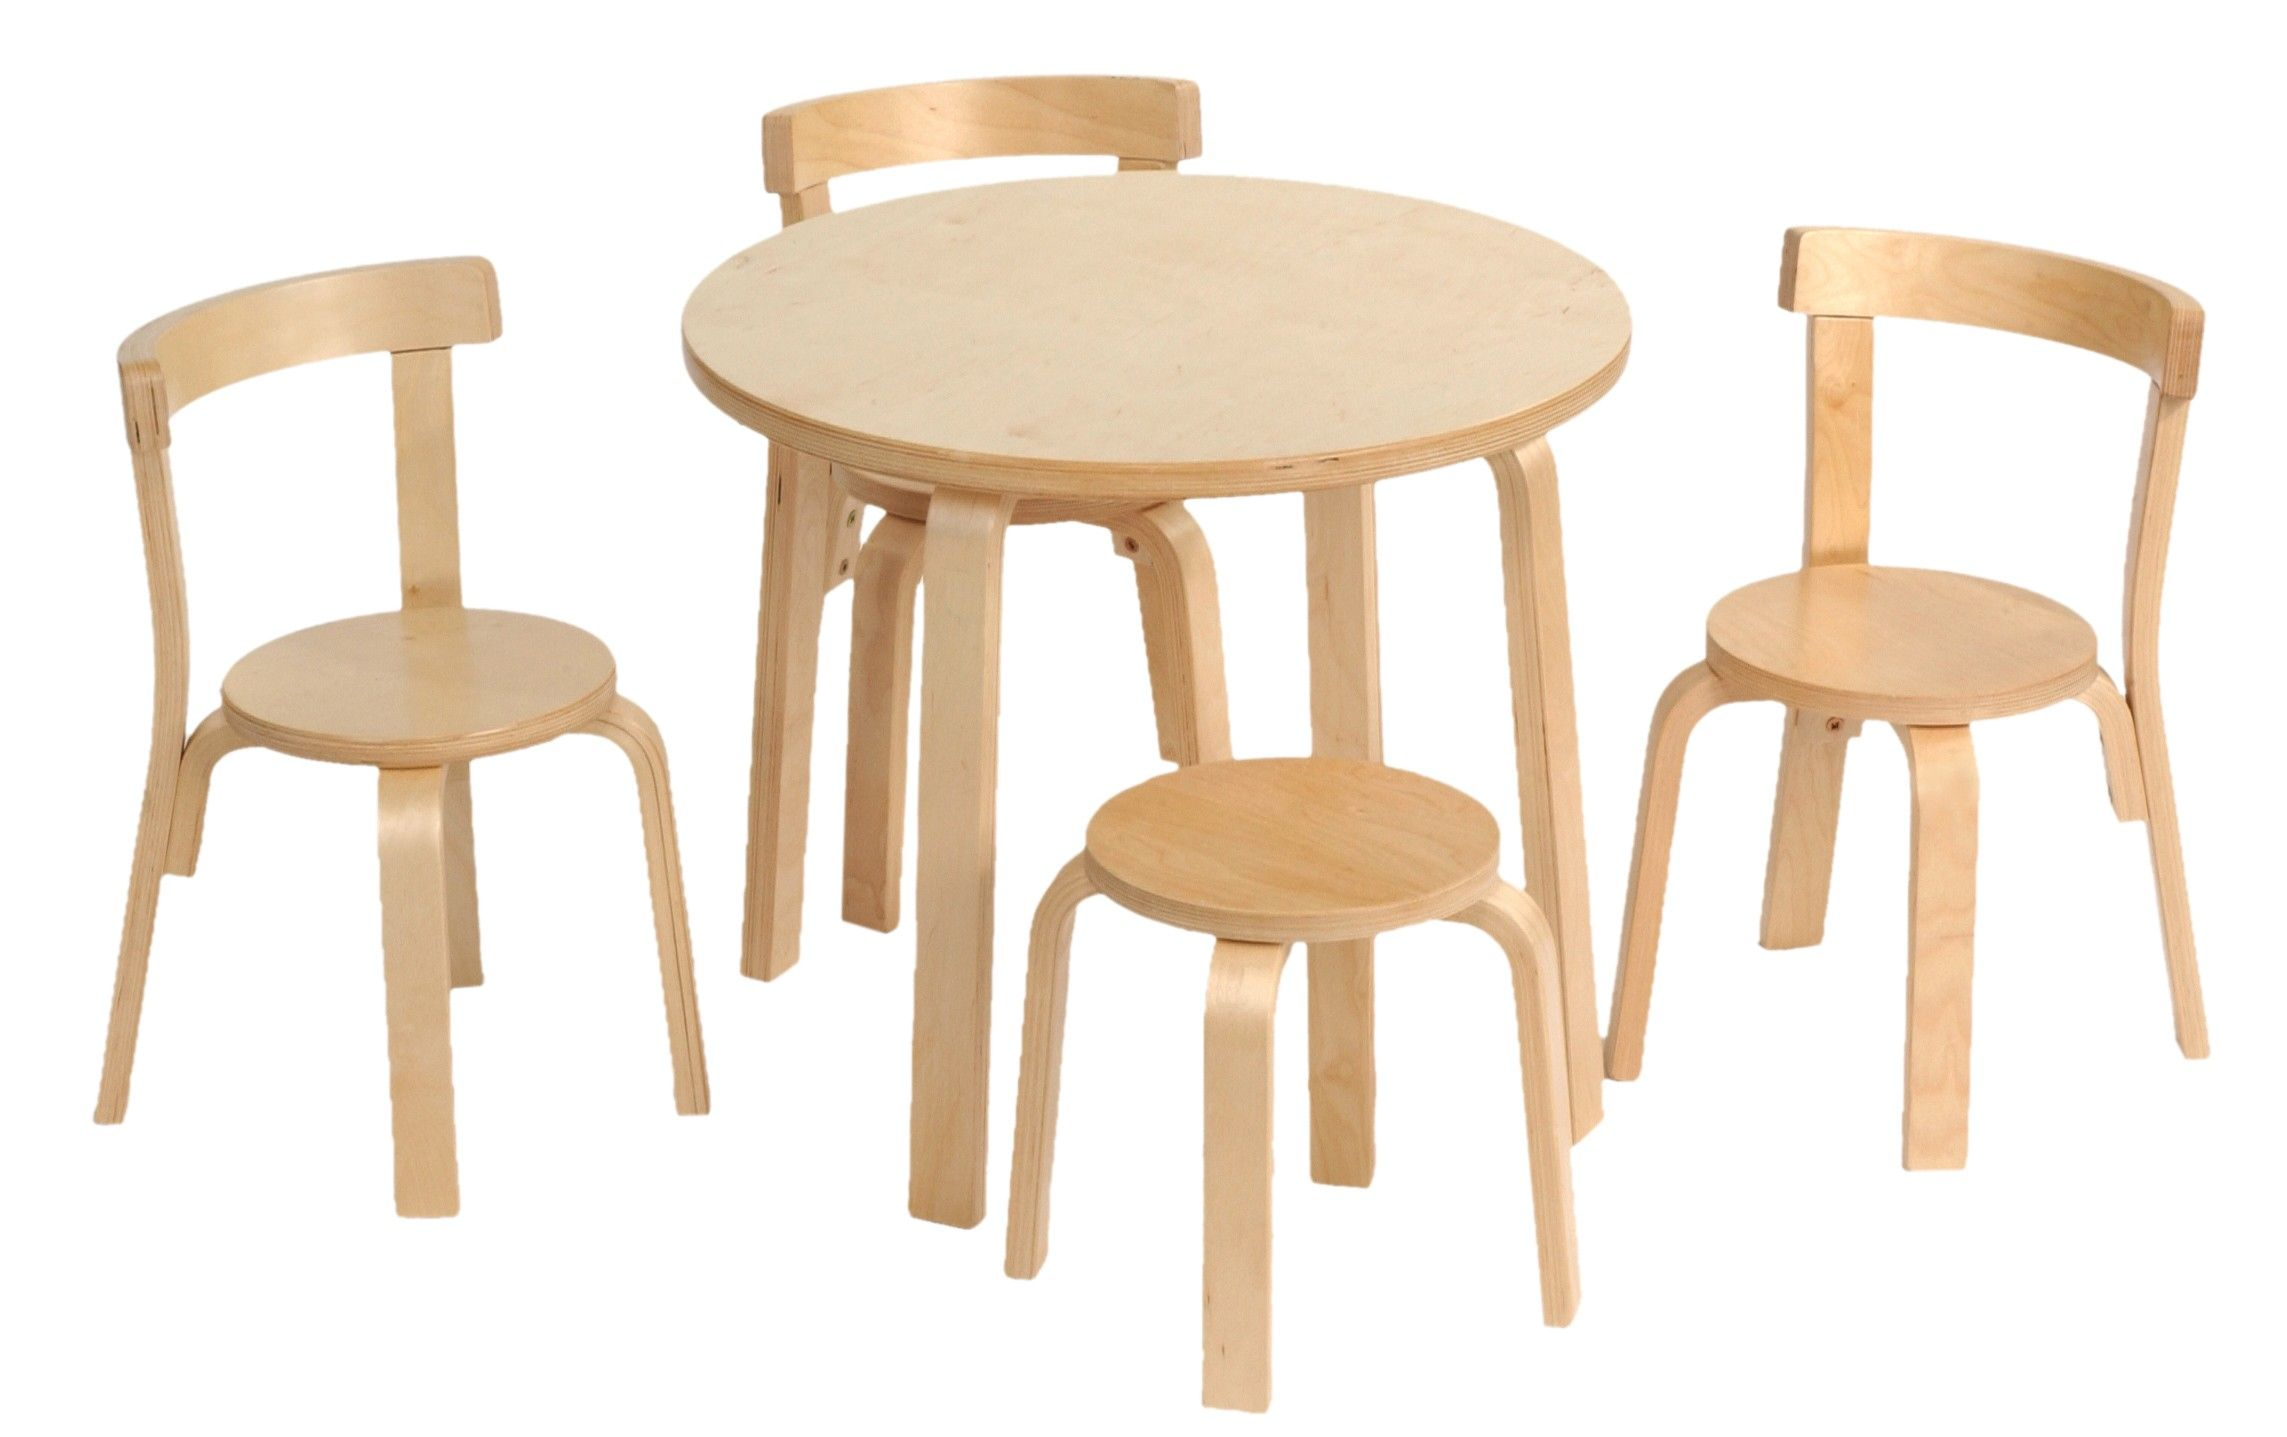 Kids Room Furniture Round White Oak Wood Table With Three Chairs And A Stool Childrens Wooden Table And Chairs Toddler Table Toddler Table Set Kids Table And Chairs